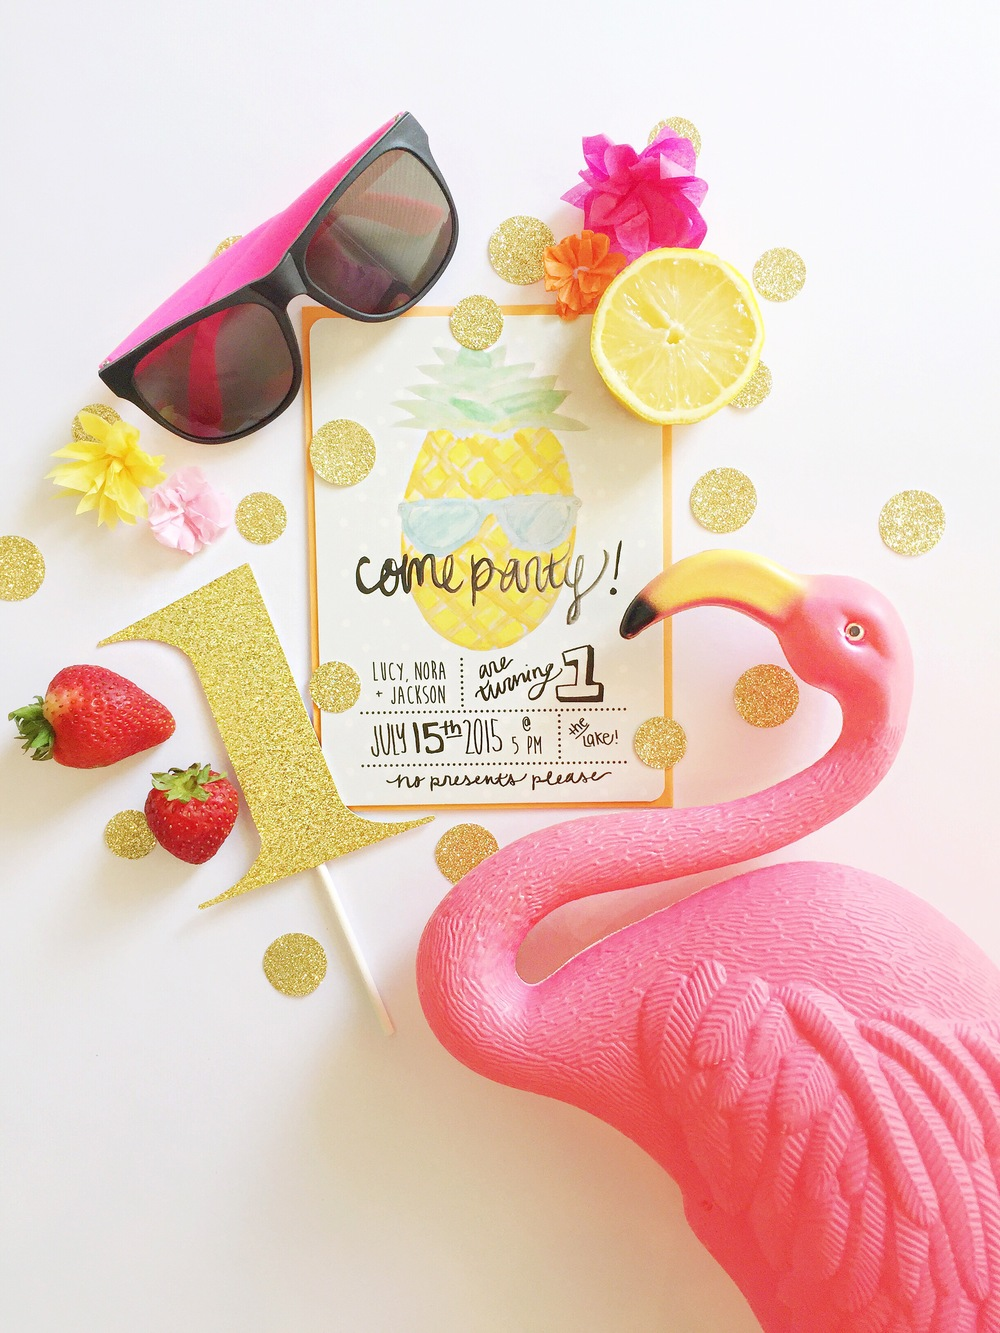 Gorgeous invites designed by Lauren. Glitter '1' by Glam Banners, Flamingo & sunnies Amazon